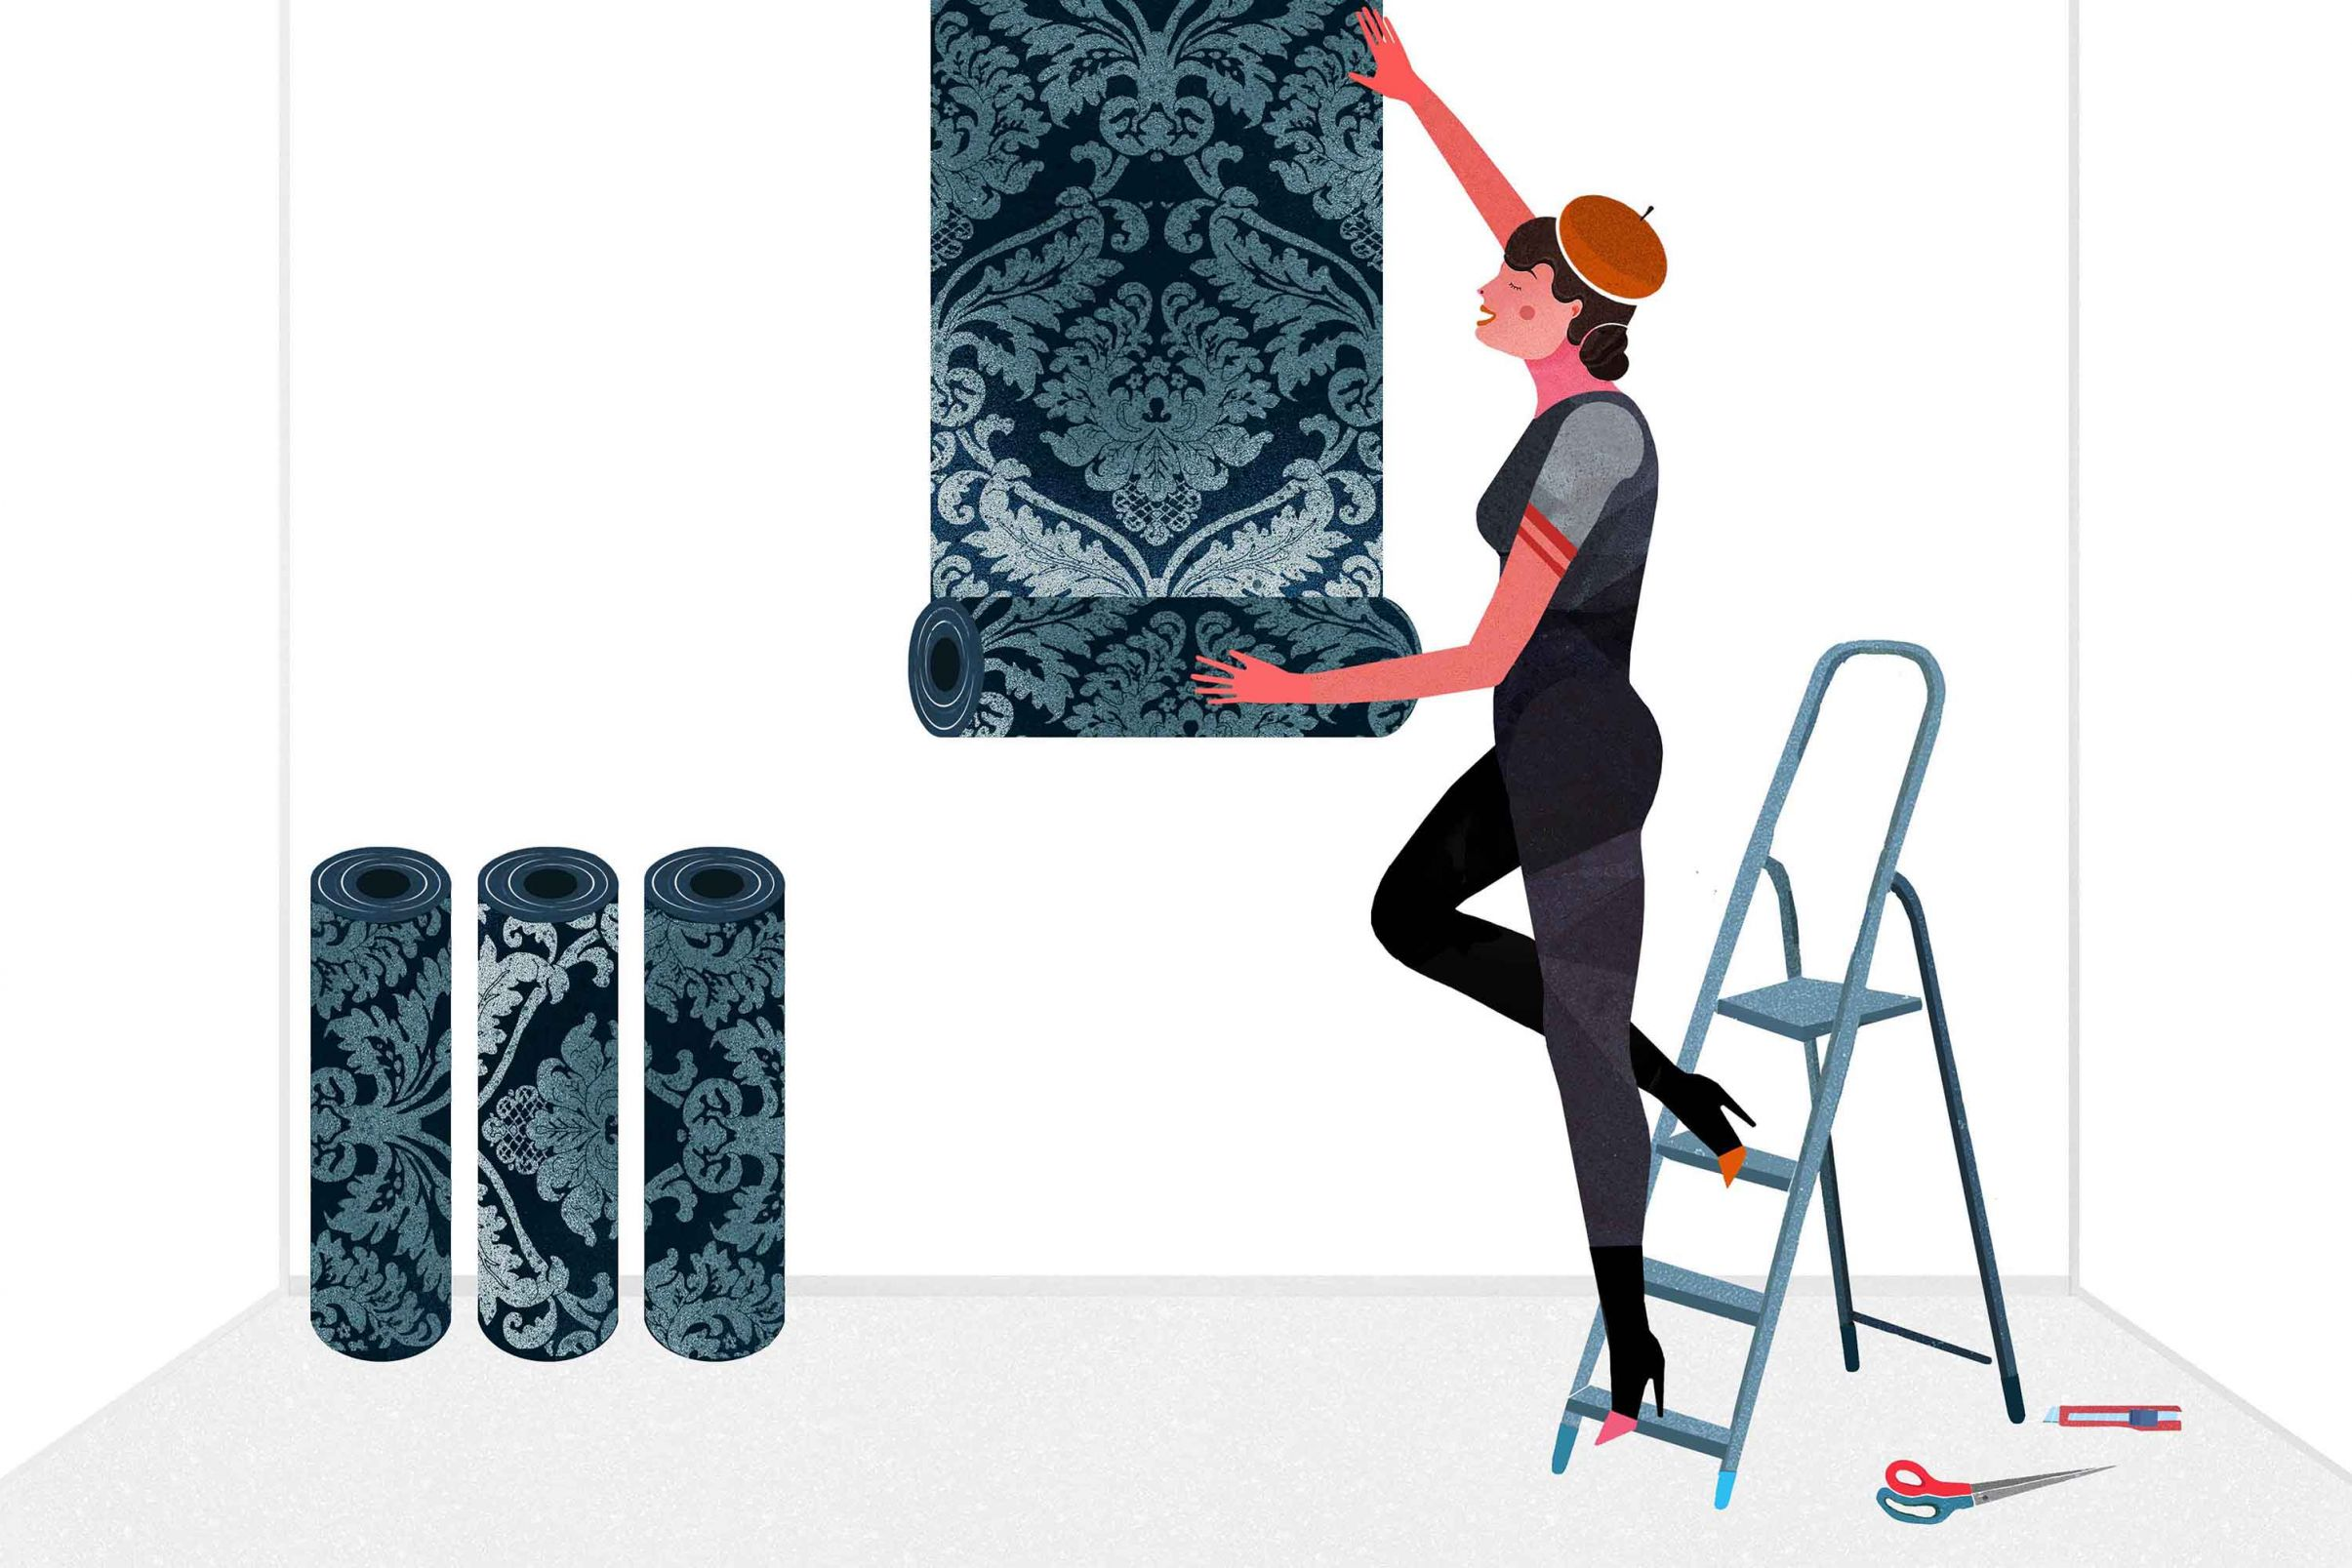 How-to-cut-wallpaper-correctly-Determine-the-start-of-the-pattern